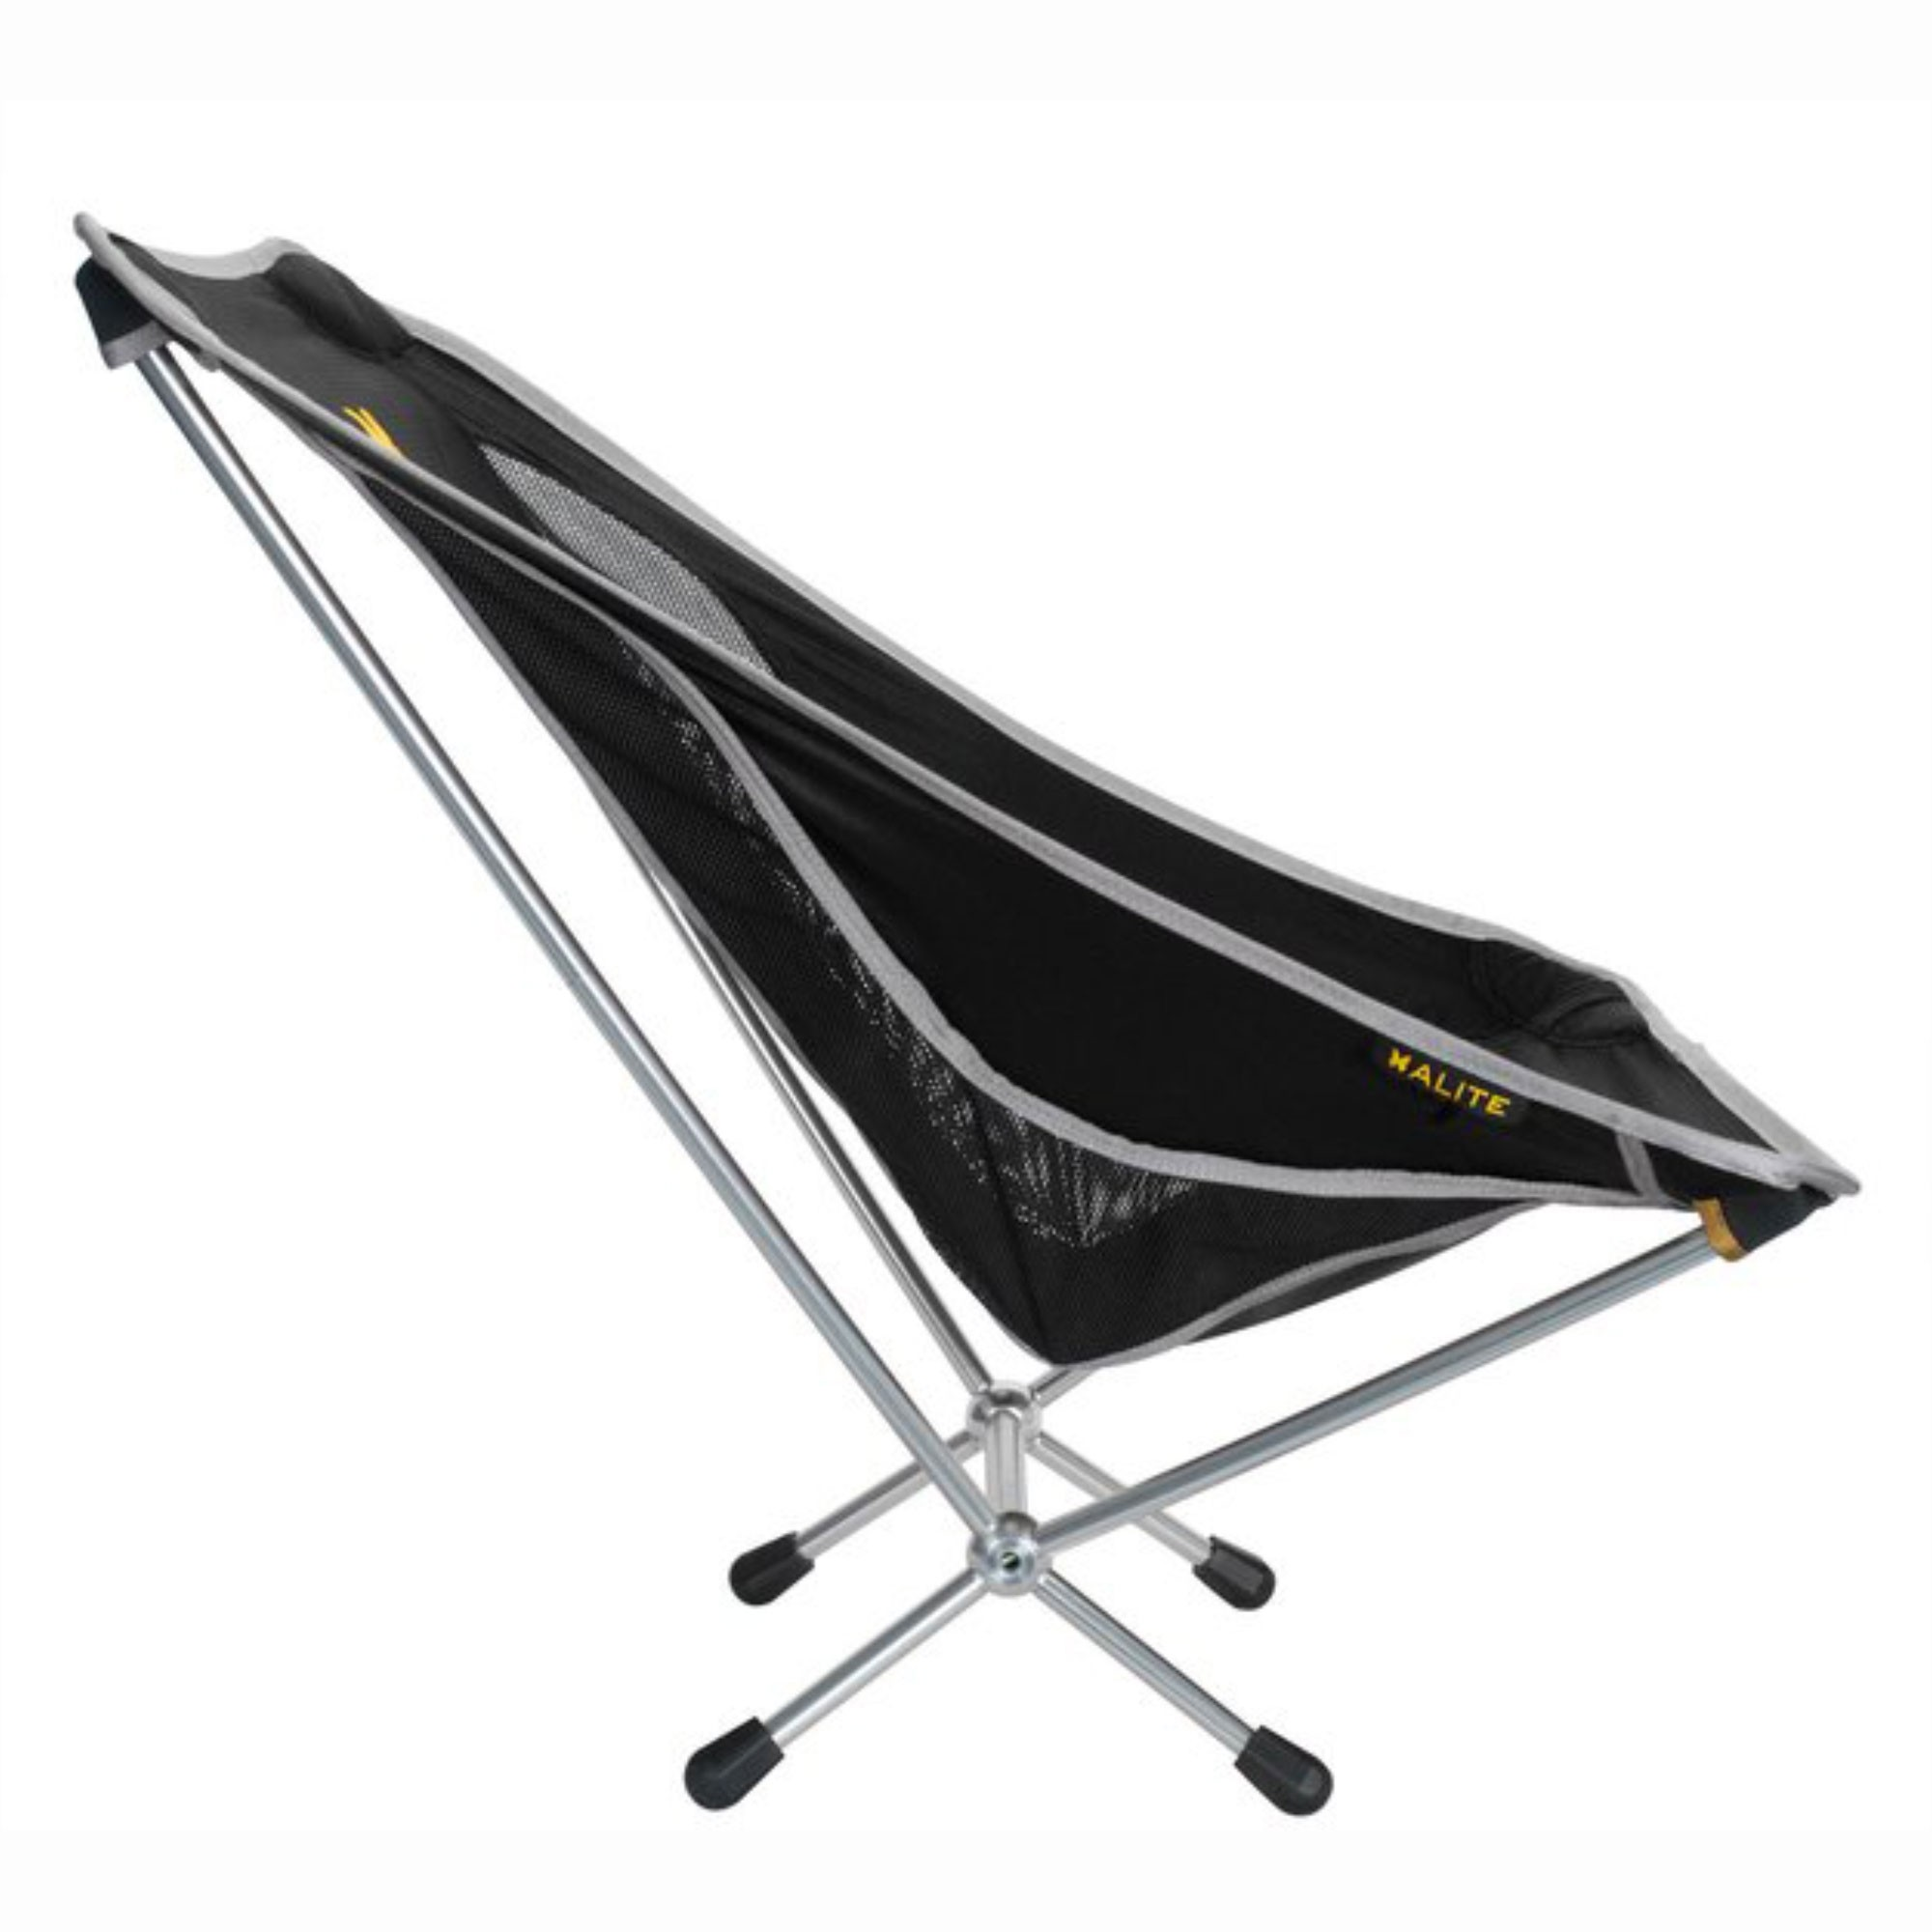 Alite-Designs-Mantis-Camping-Chair-Front-Black.jpg